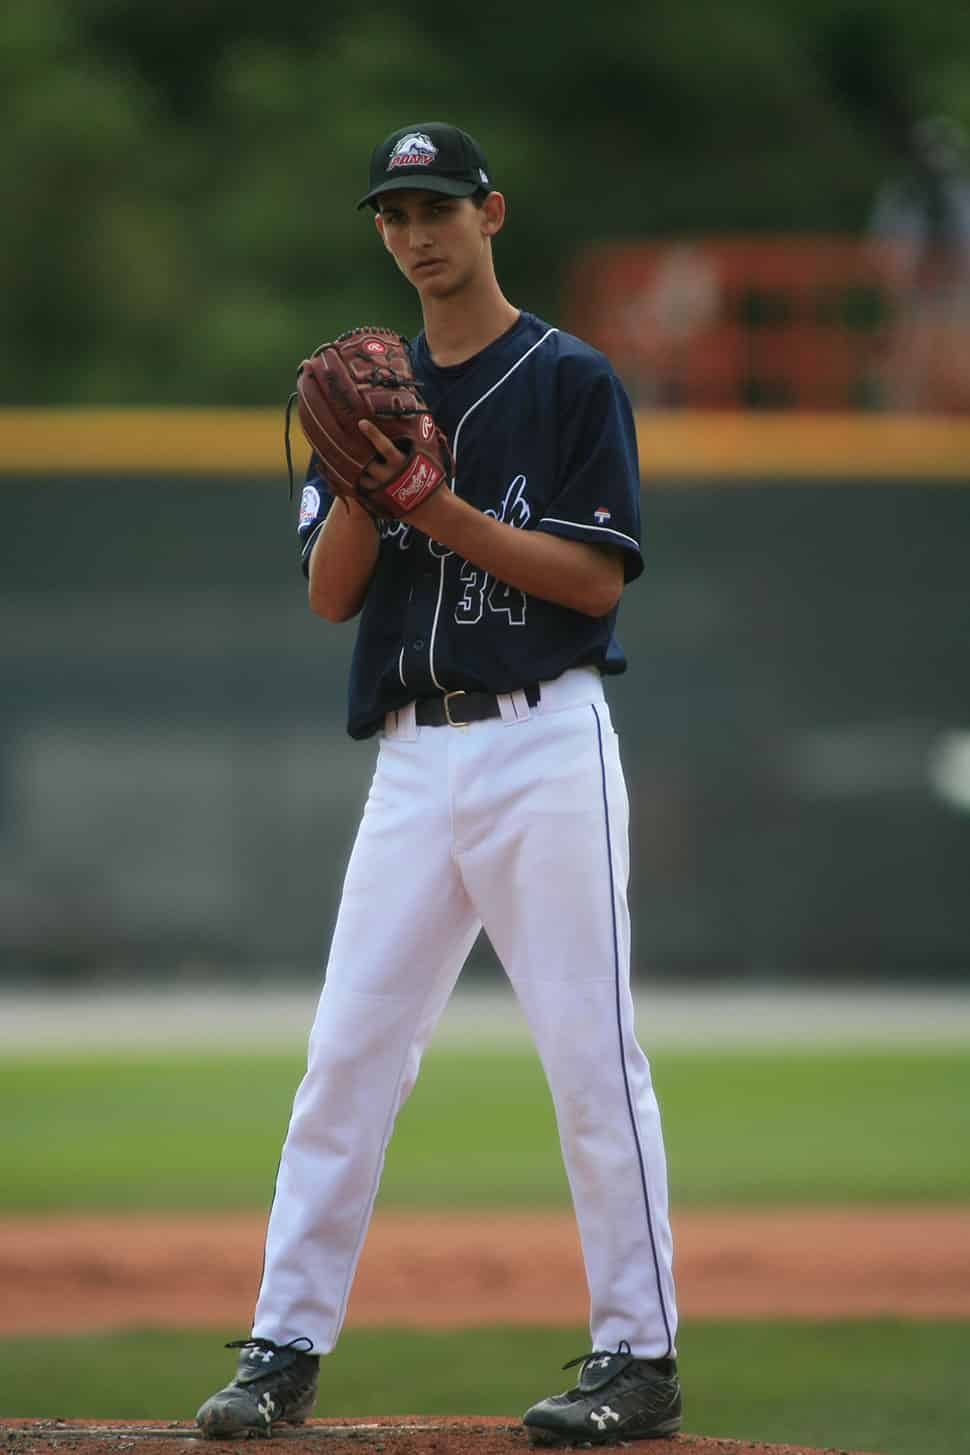 Chase De Jong starting for the PONY team in 2008